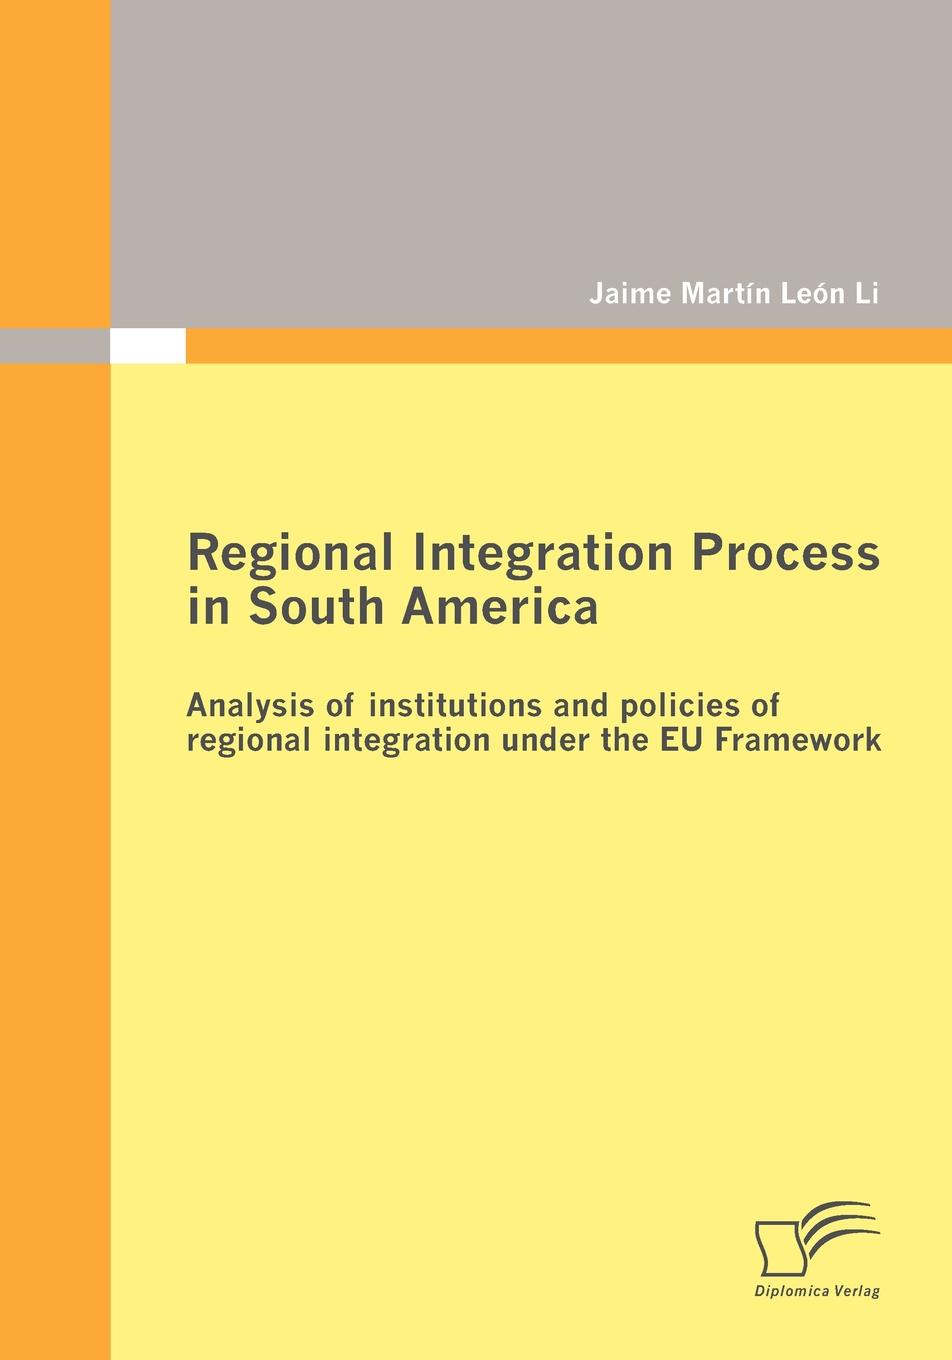 Jaime Martín León Li Regional Integration Process in South America. Analysis of institutions and policies of regional integration under the EU Framework electricity market in turkey and its integration policy into the eu